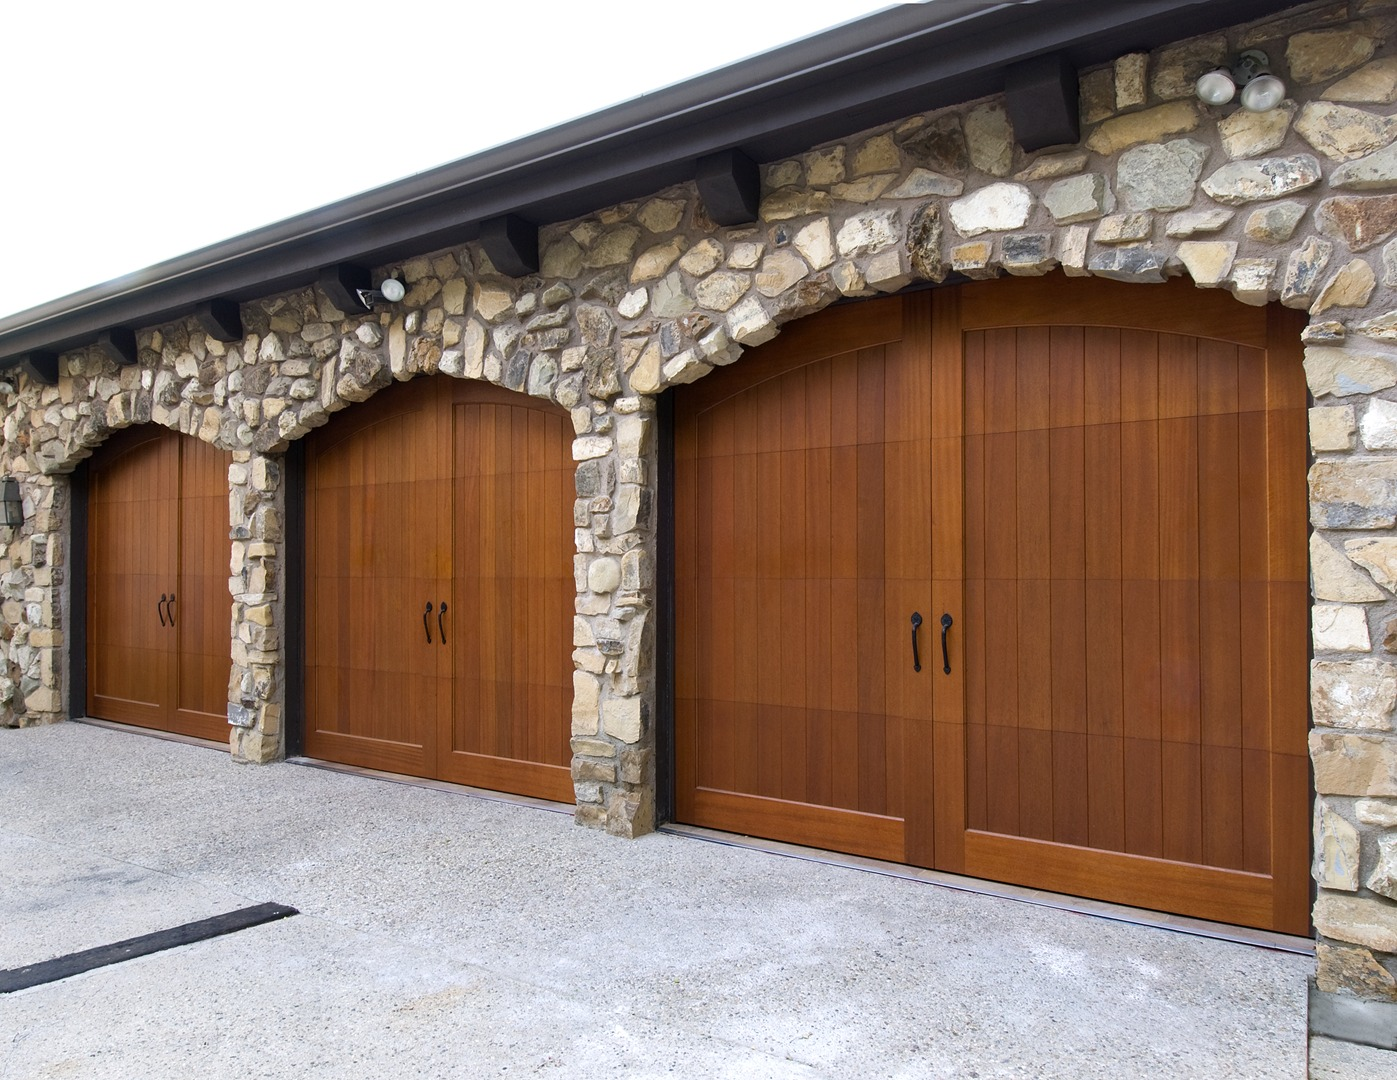 House with wood garage door - House With Wood Garage Door